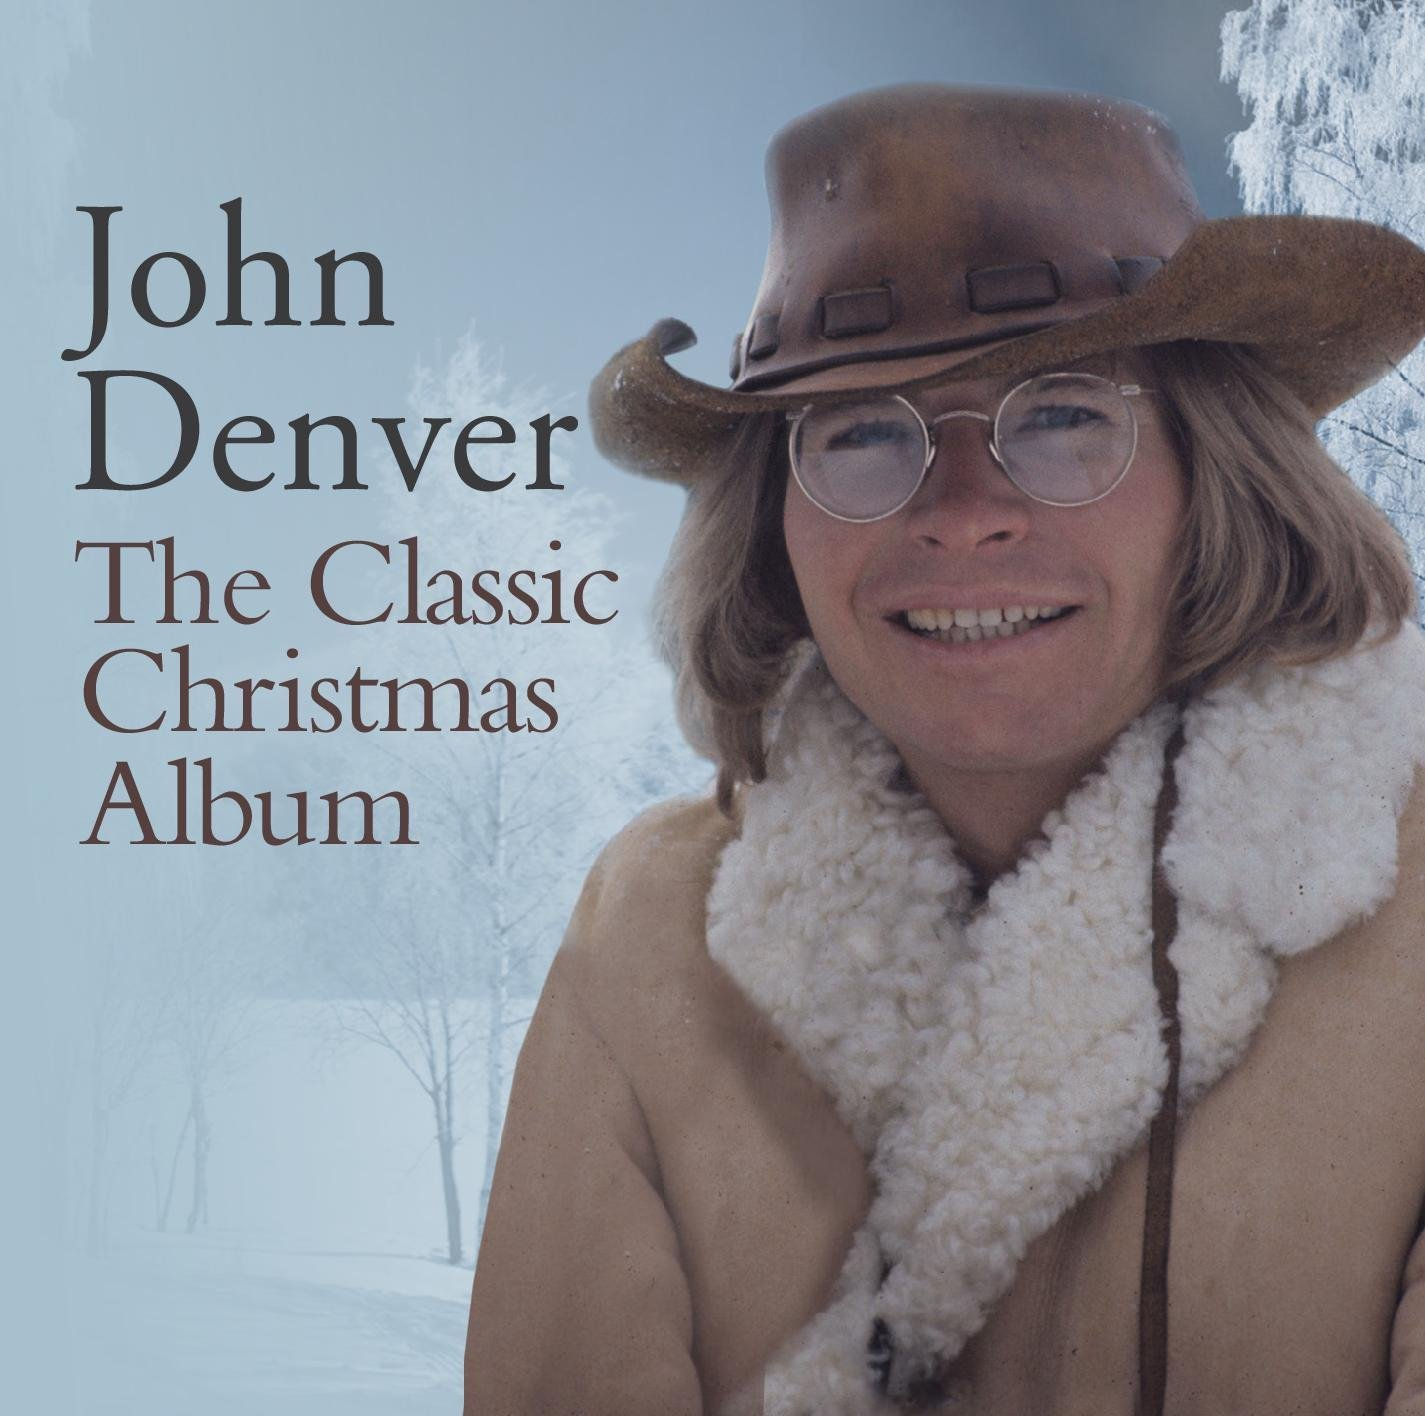 JOHN DENVER - THE CLASSIC CHRISTMAS ALBUM (CD)